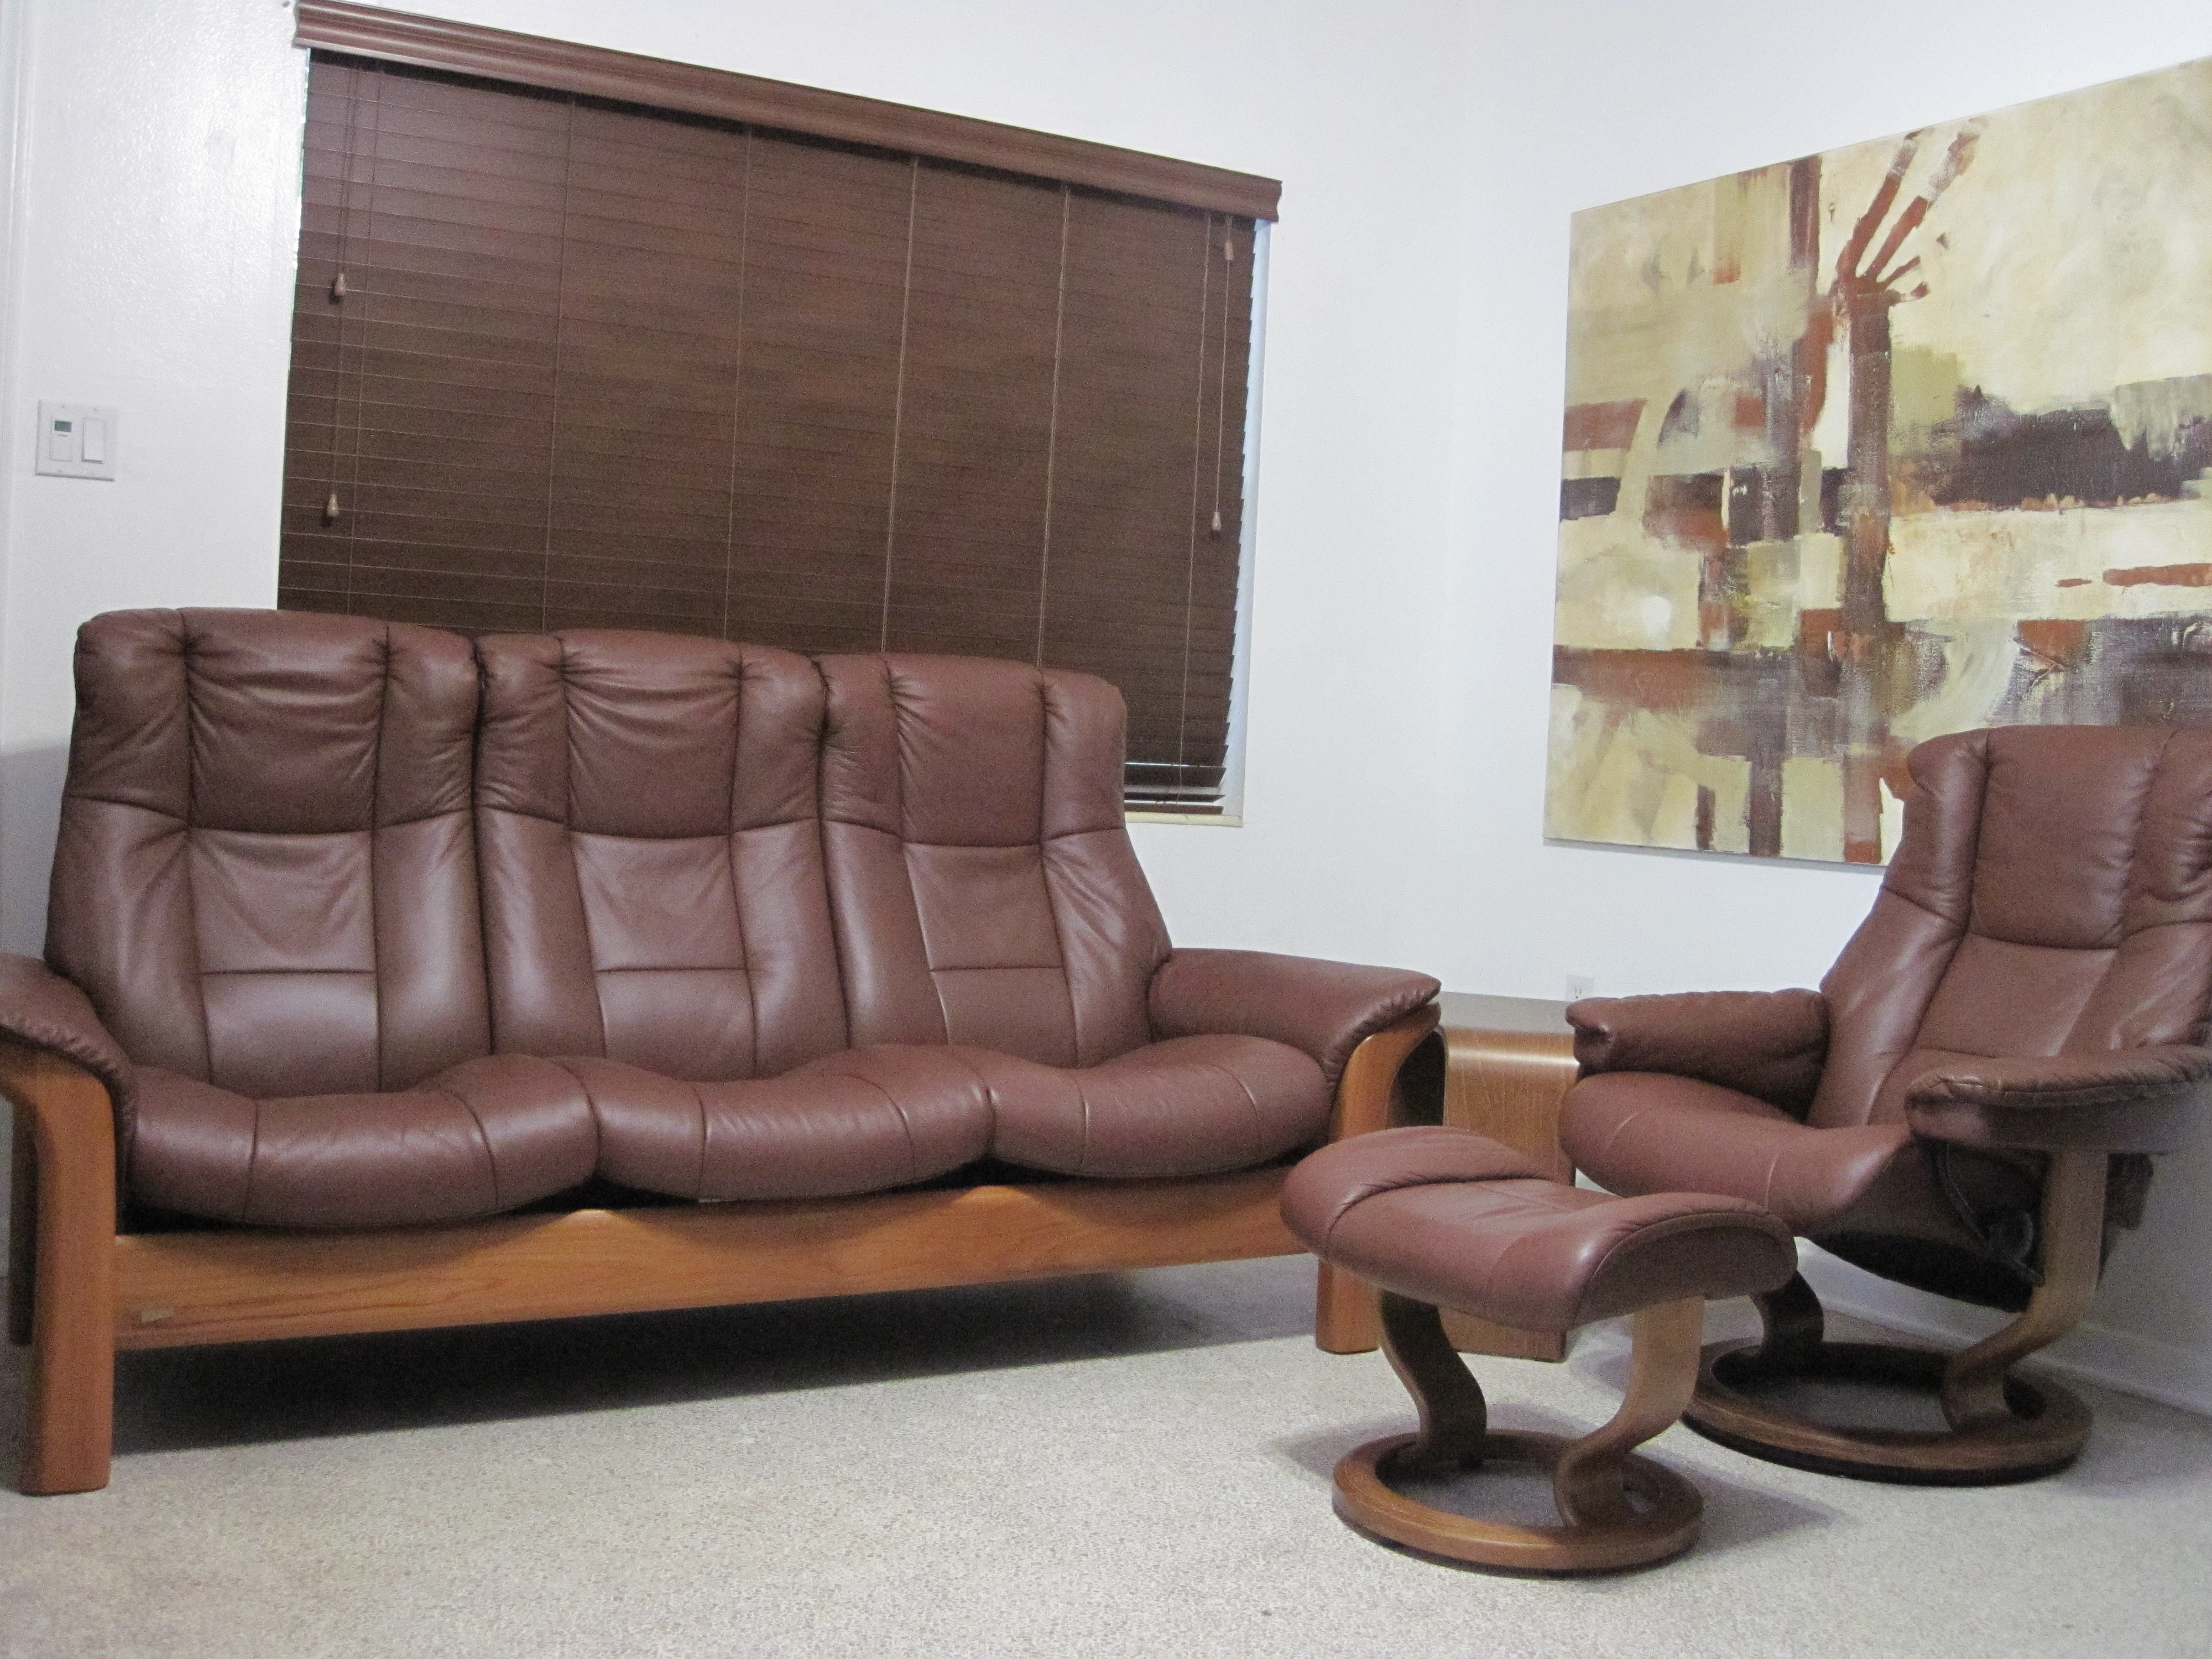 used stressless recliners mid century danish modern ekornes stressless chrome lounge chair. Black Bedroom Furniture Sets. Home Design Ideas